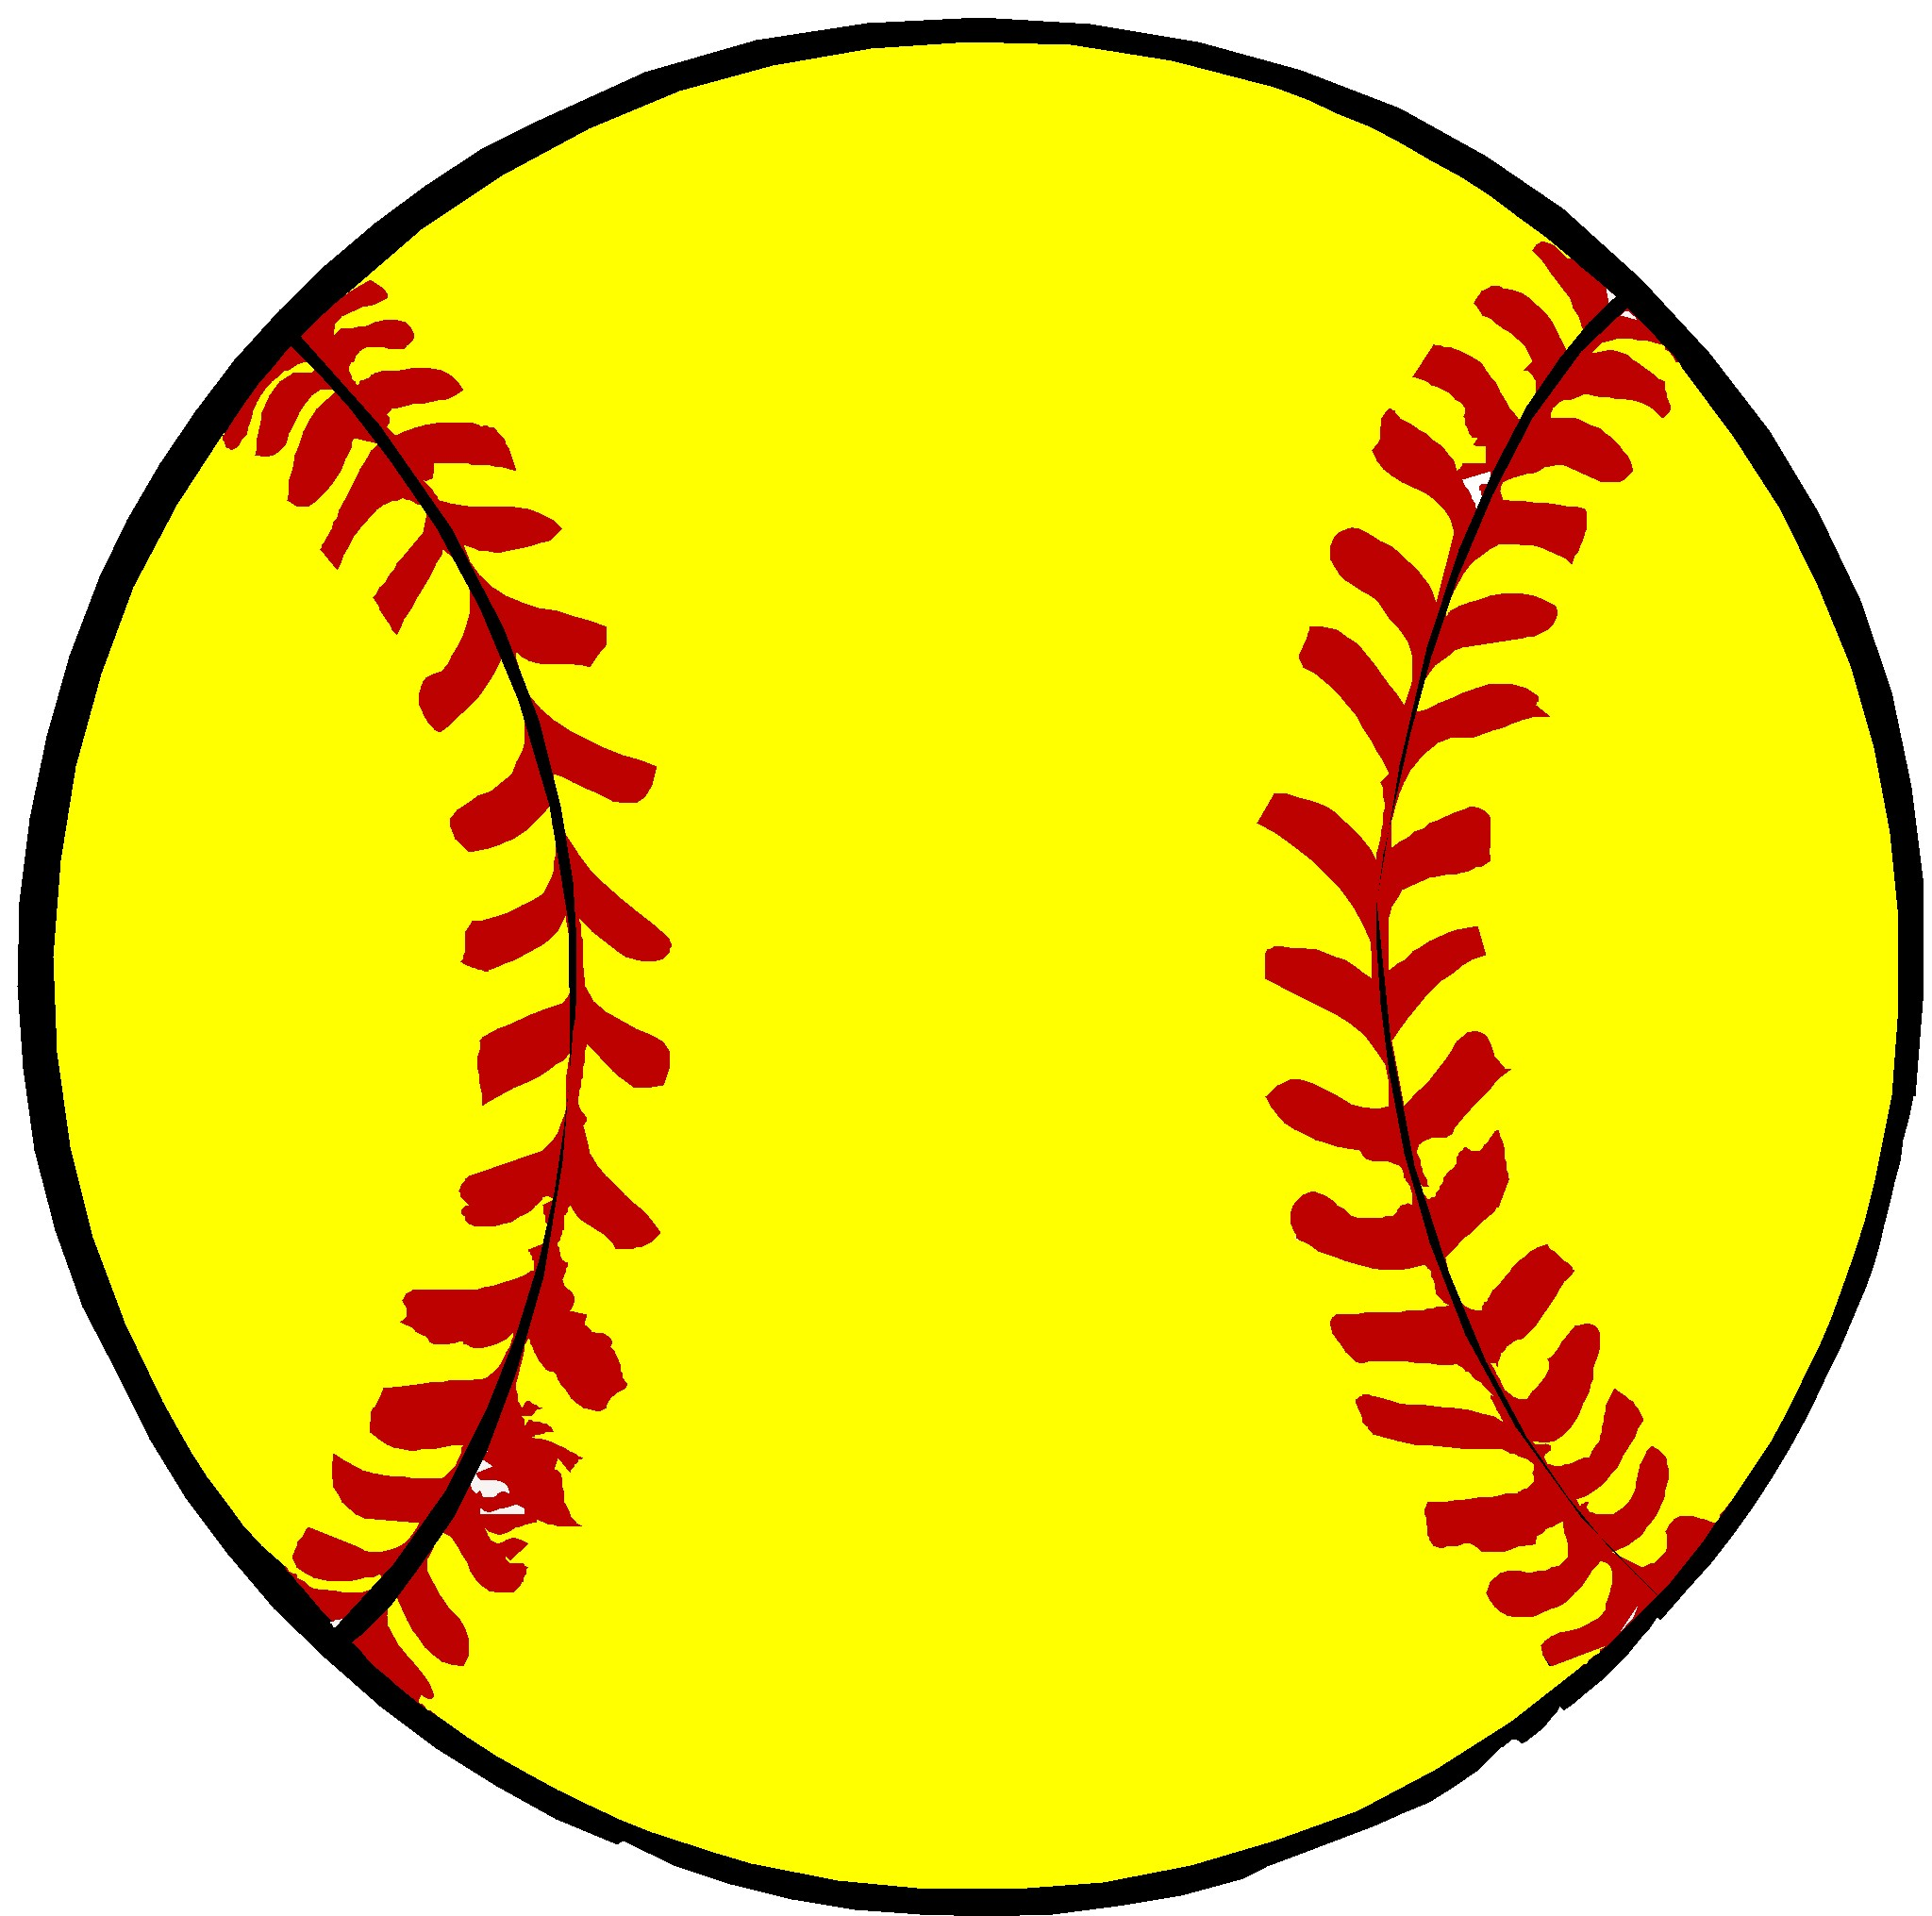 Free Softball Clipart Png, Download Free Clip Art, Free Clip.